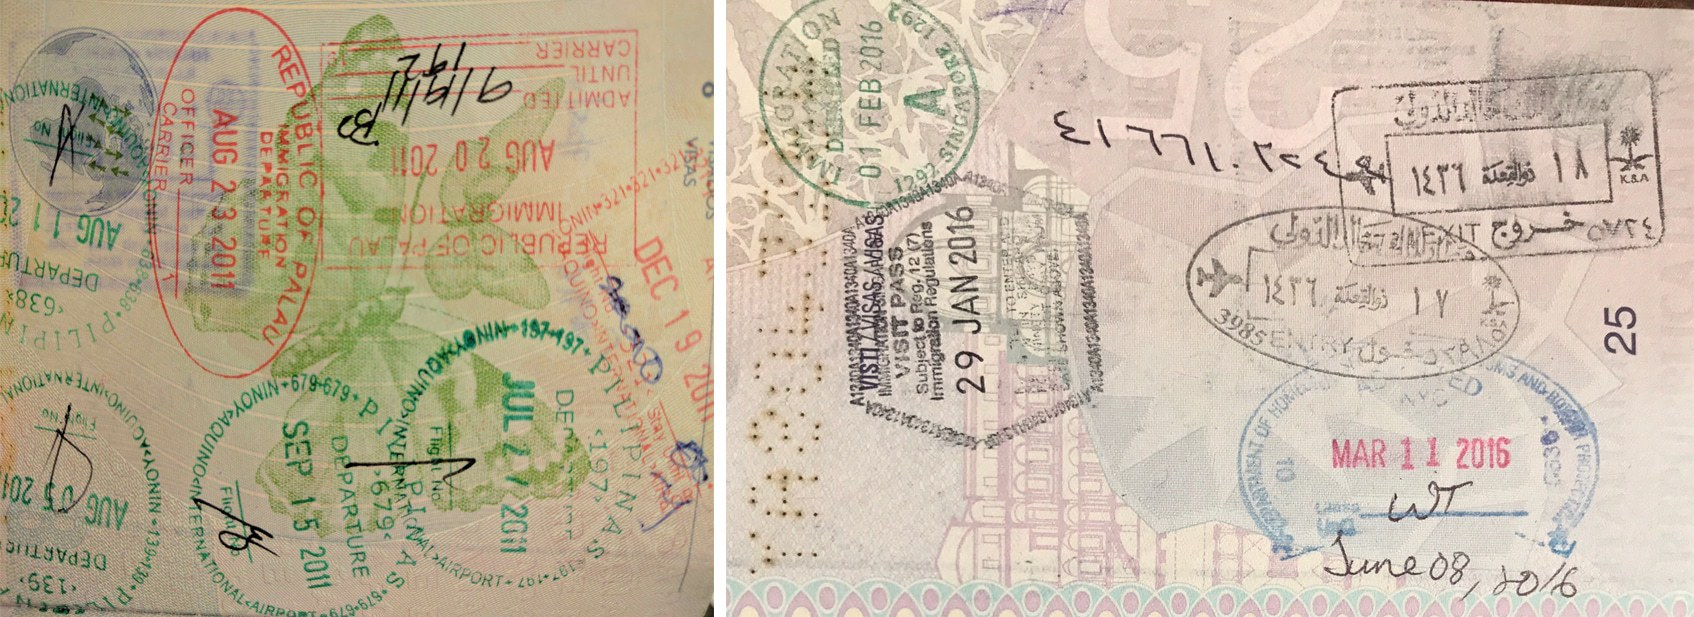 Passport stamps for Palau and Saudi Arabia